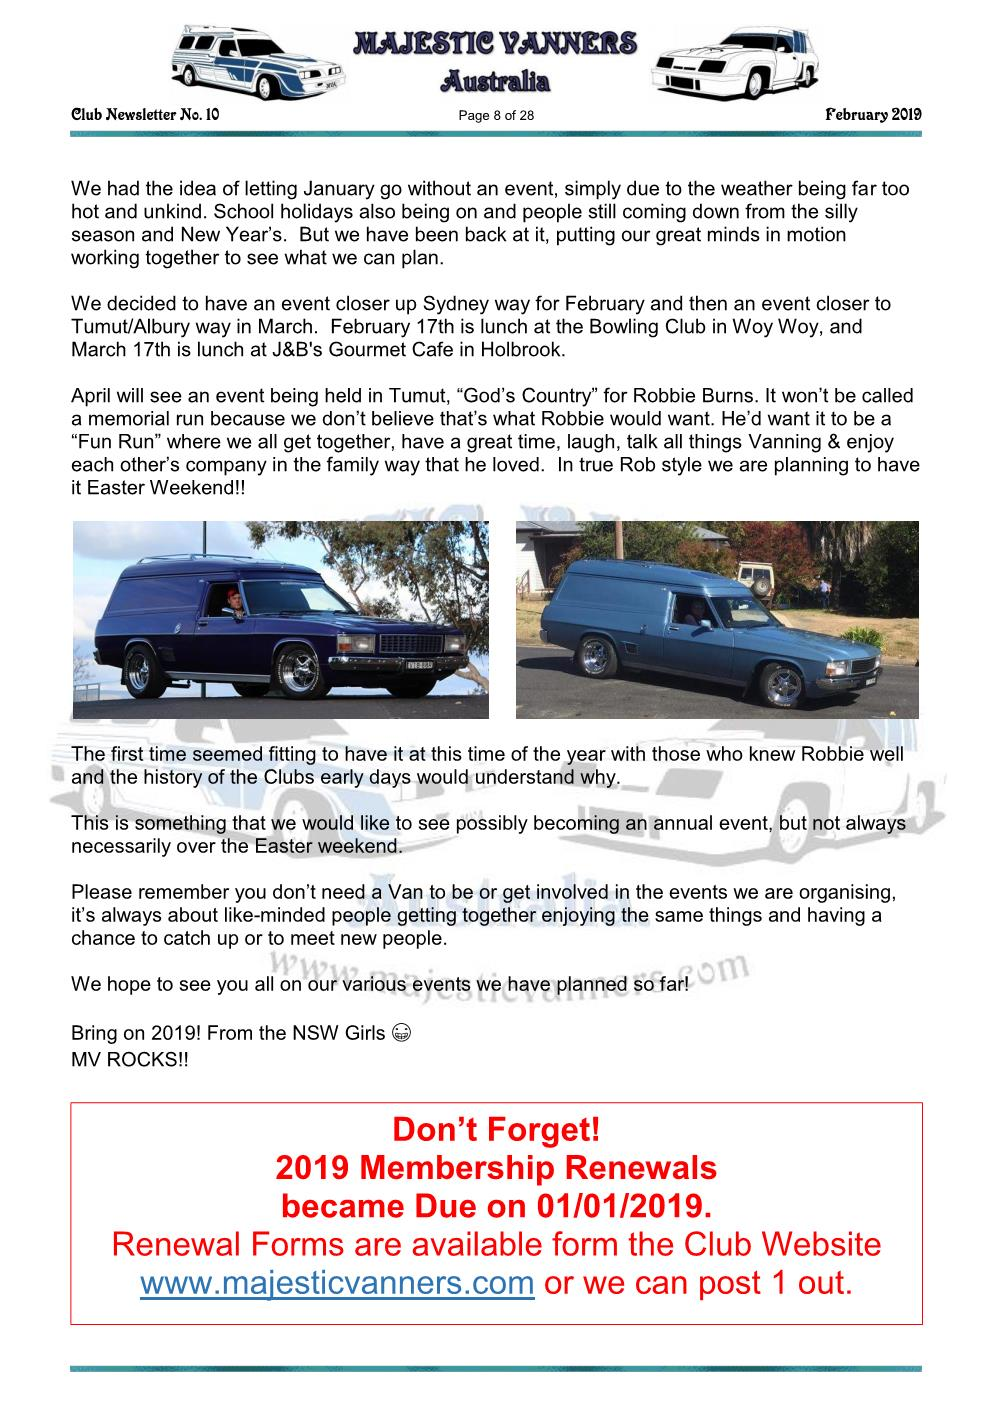 MAJESTIC VANNERS Newsletter Issue No: 10 February 2019 Mv_new18